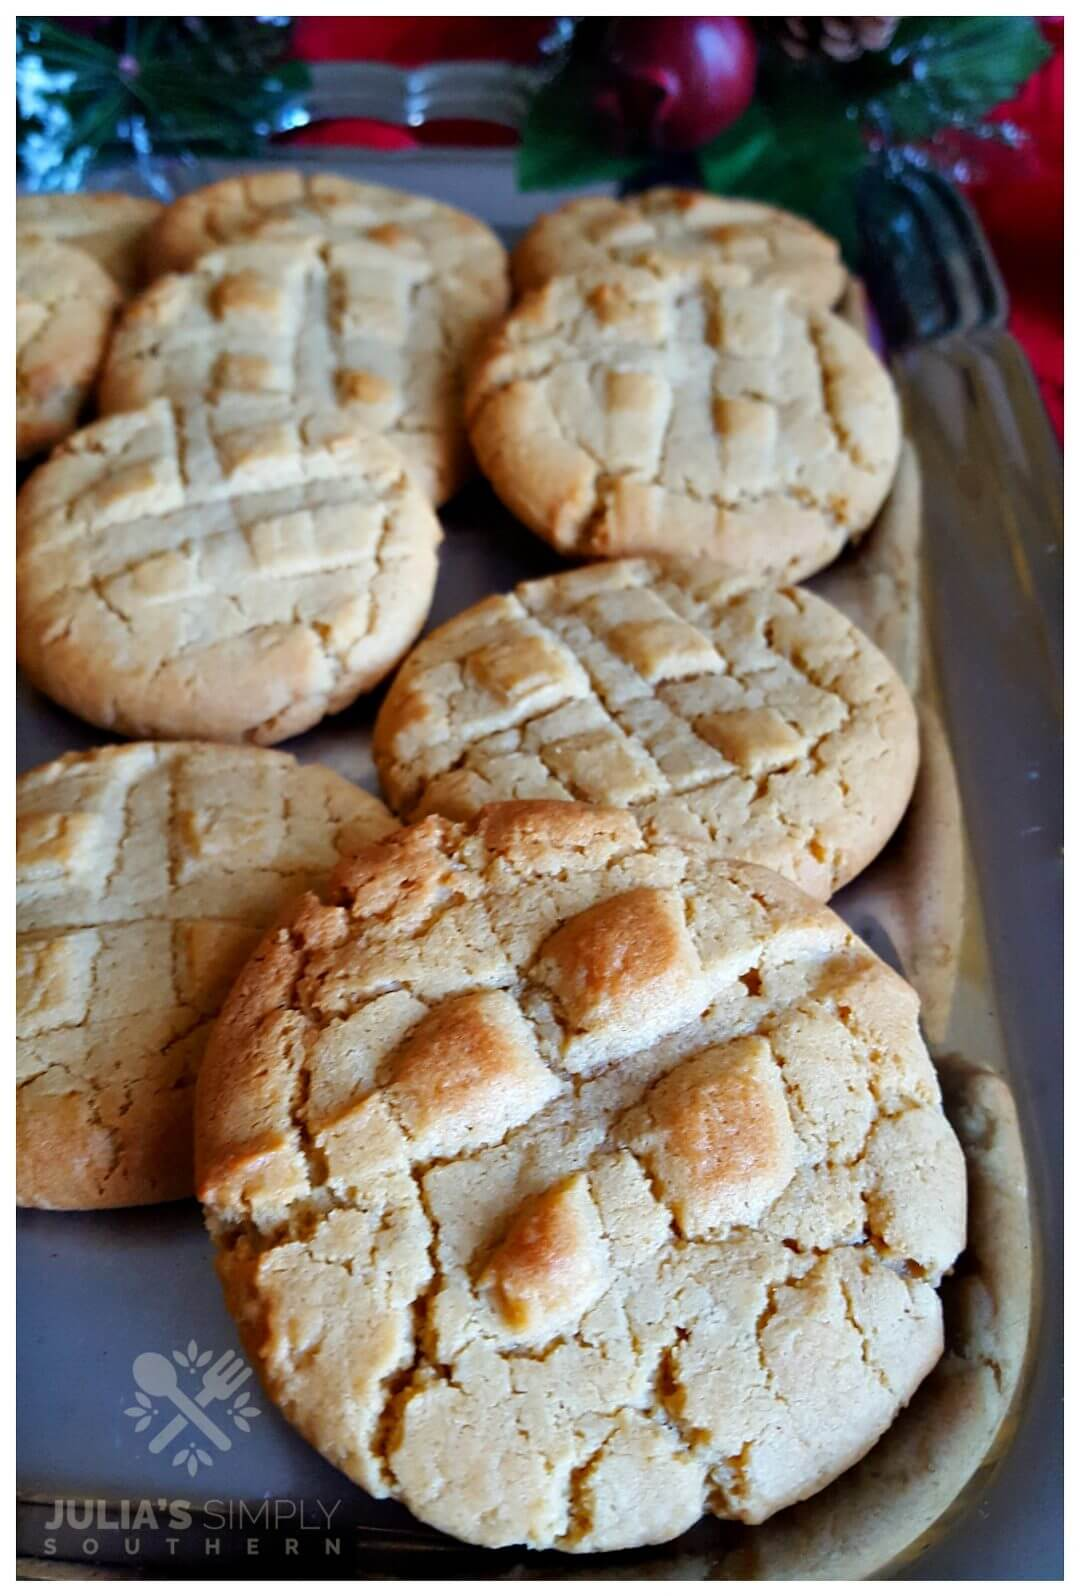 Fresh baked cookies on a platter for the holidays - Julia's Simply Southern food blog